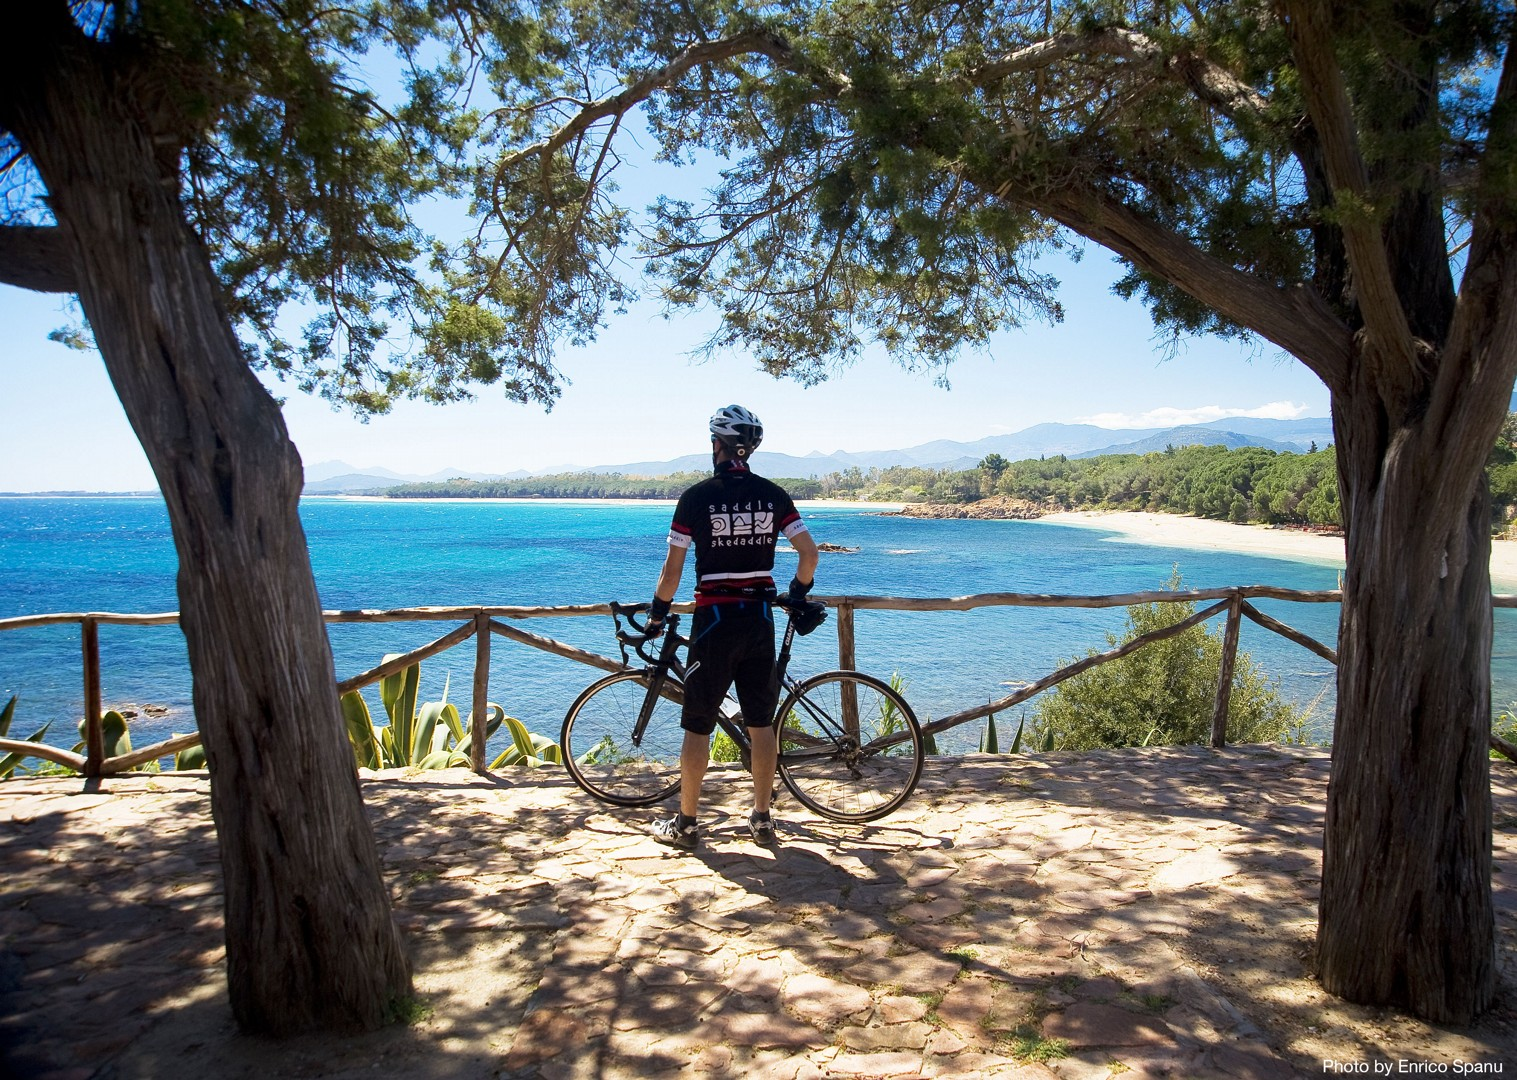 Guided-Road-Cycling-Holiday-Sardinia-Sardinian-Mountains-Forests-and-beautiful-countryside.jpg - Italy - Sardinia - Mountain Explorer - Guided Road Cycling Holiday - Road Cycling